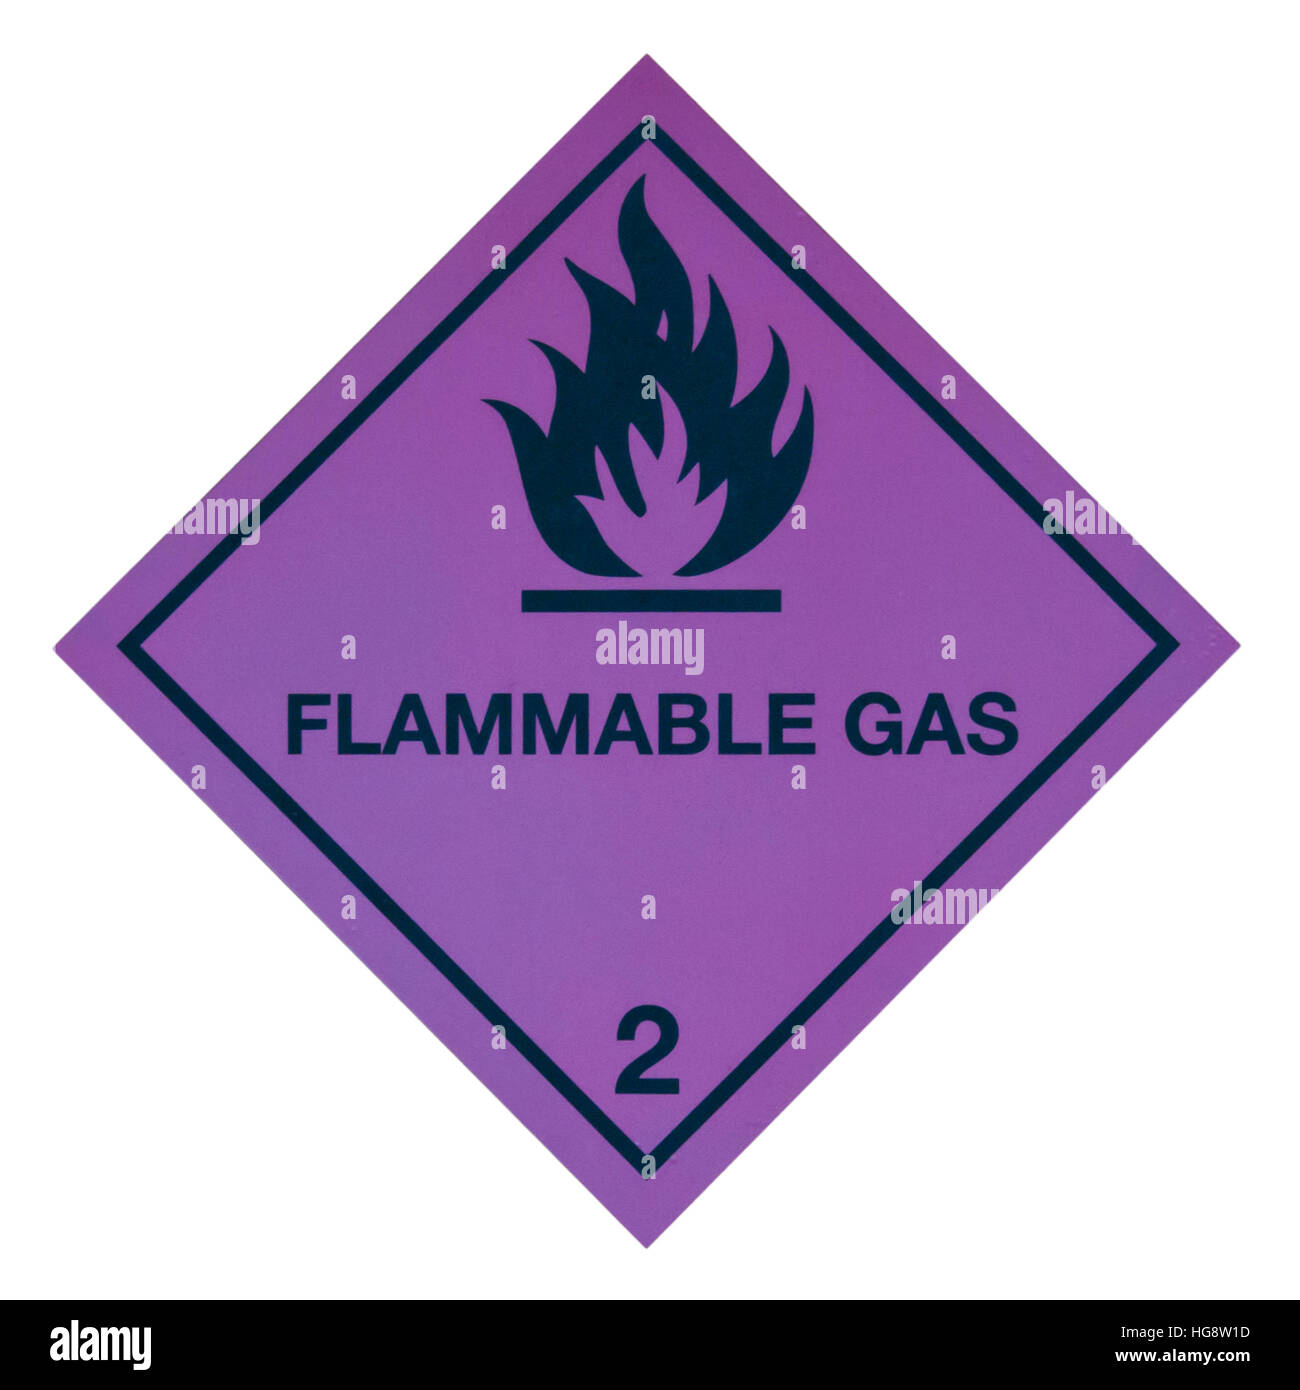 Flammable Gas Sign - Stock Image